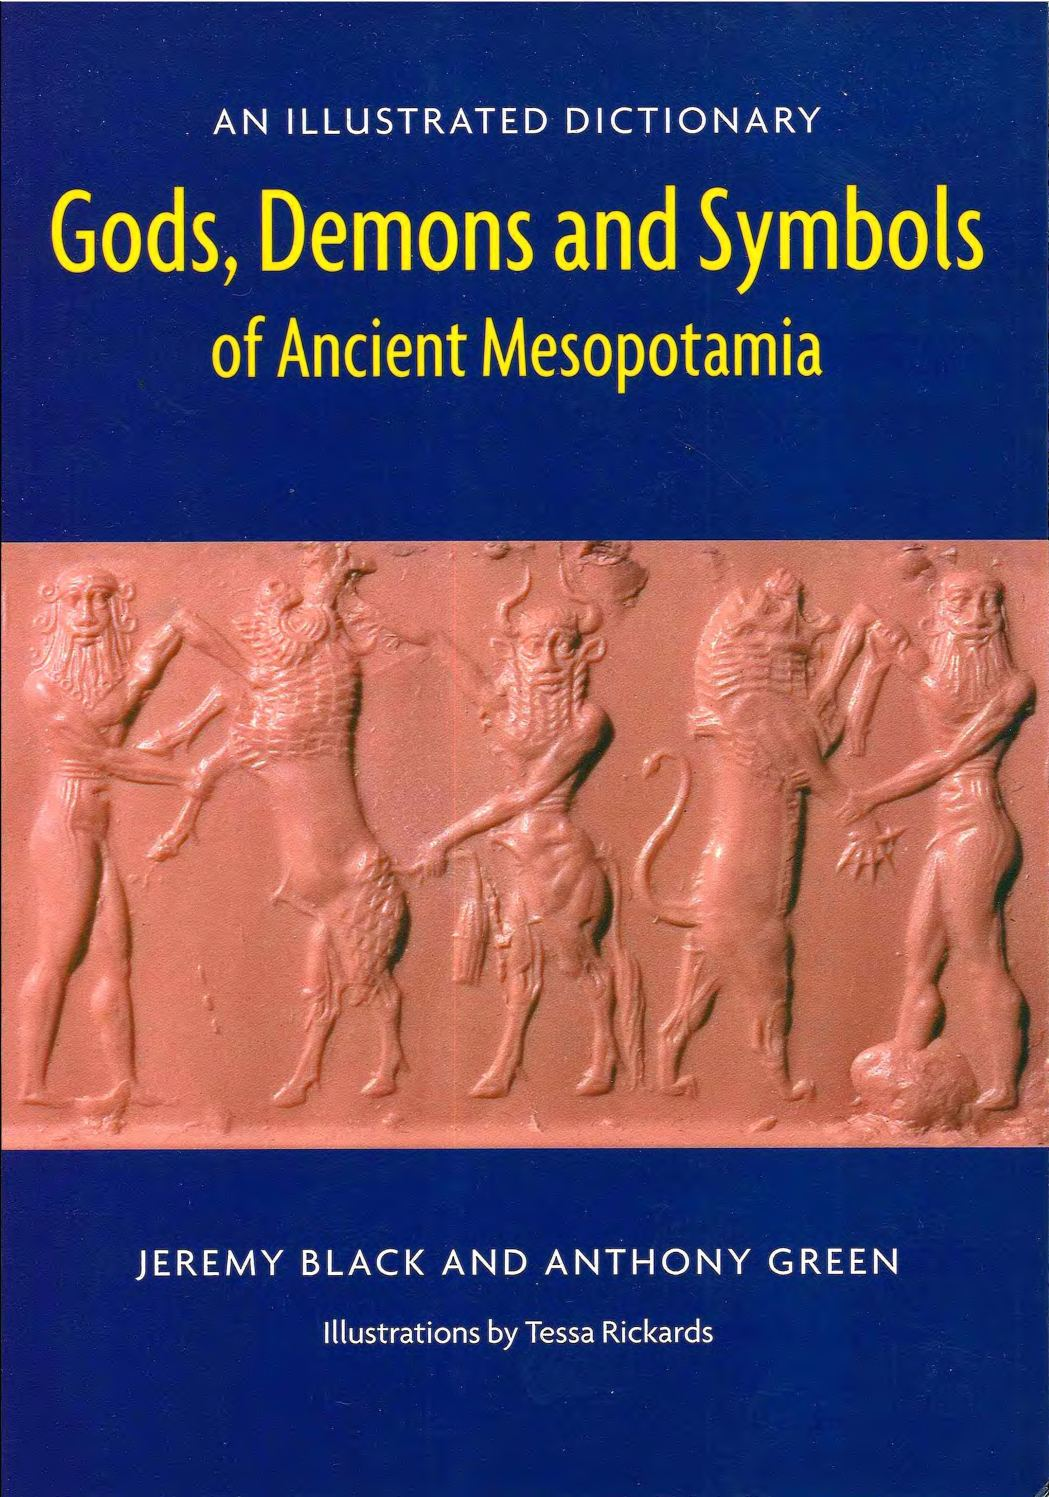 a5e64f18bf6 Calaméo - Gods Demons And Symbols Of Ancient Mesopotamia. An Illustrated  Dictionary (1992)